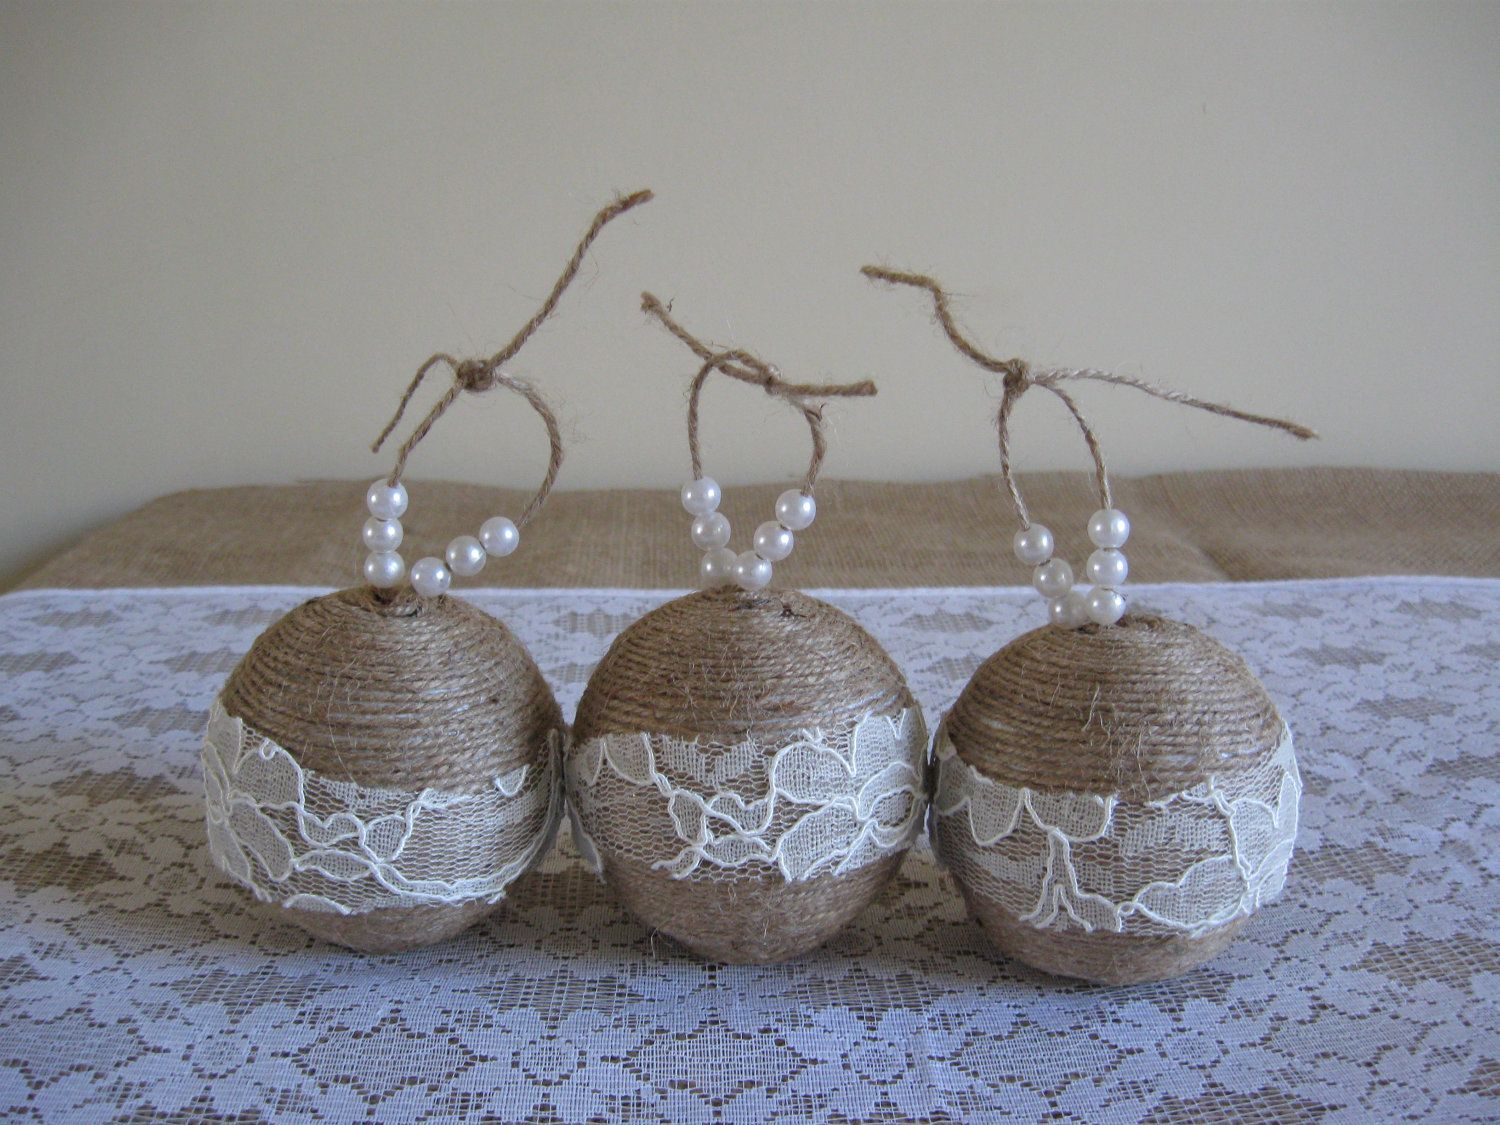 Homemade rustic christmas ornaments - Rustic Christmas Ornaments Handmade With Twine Lace Pearls 12 00 Via Etsy